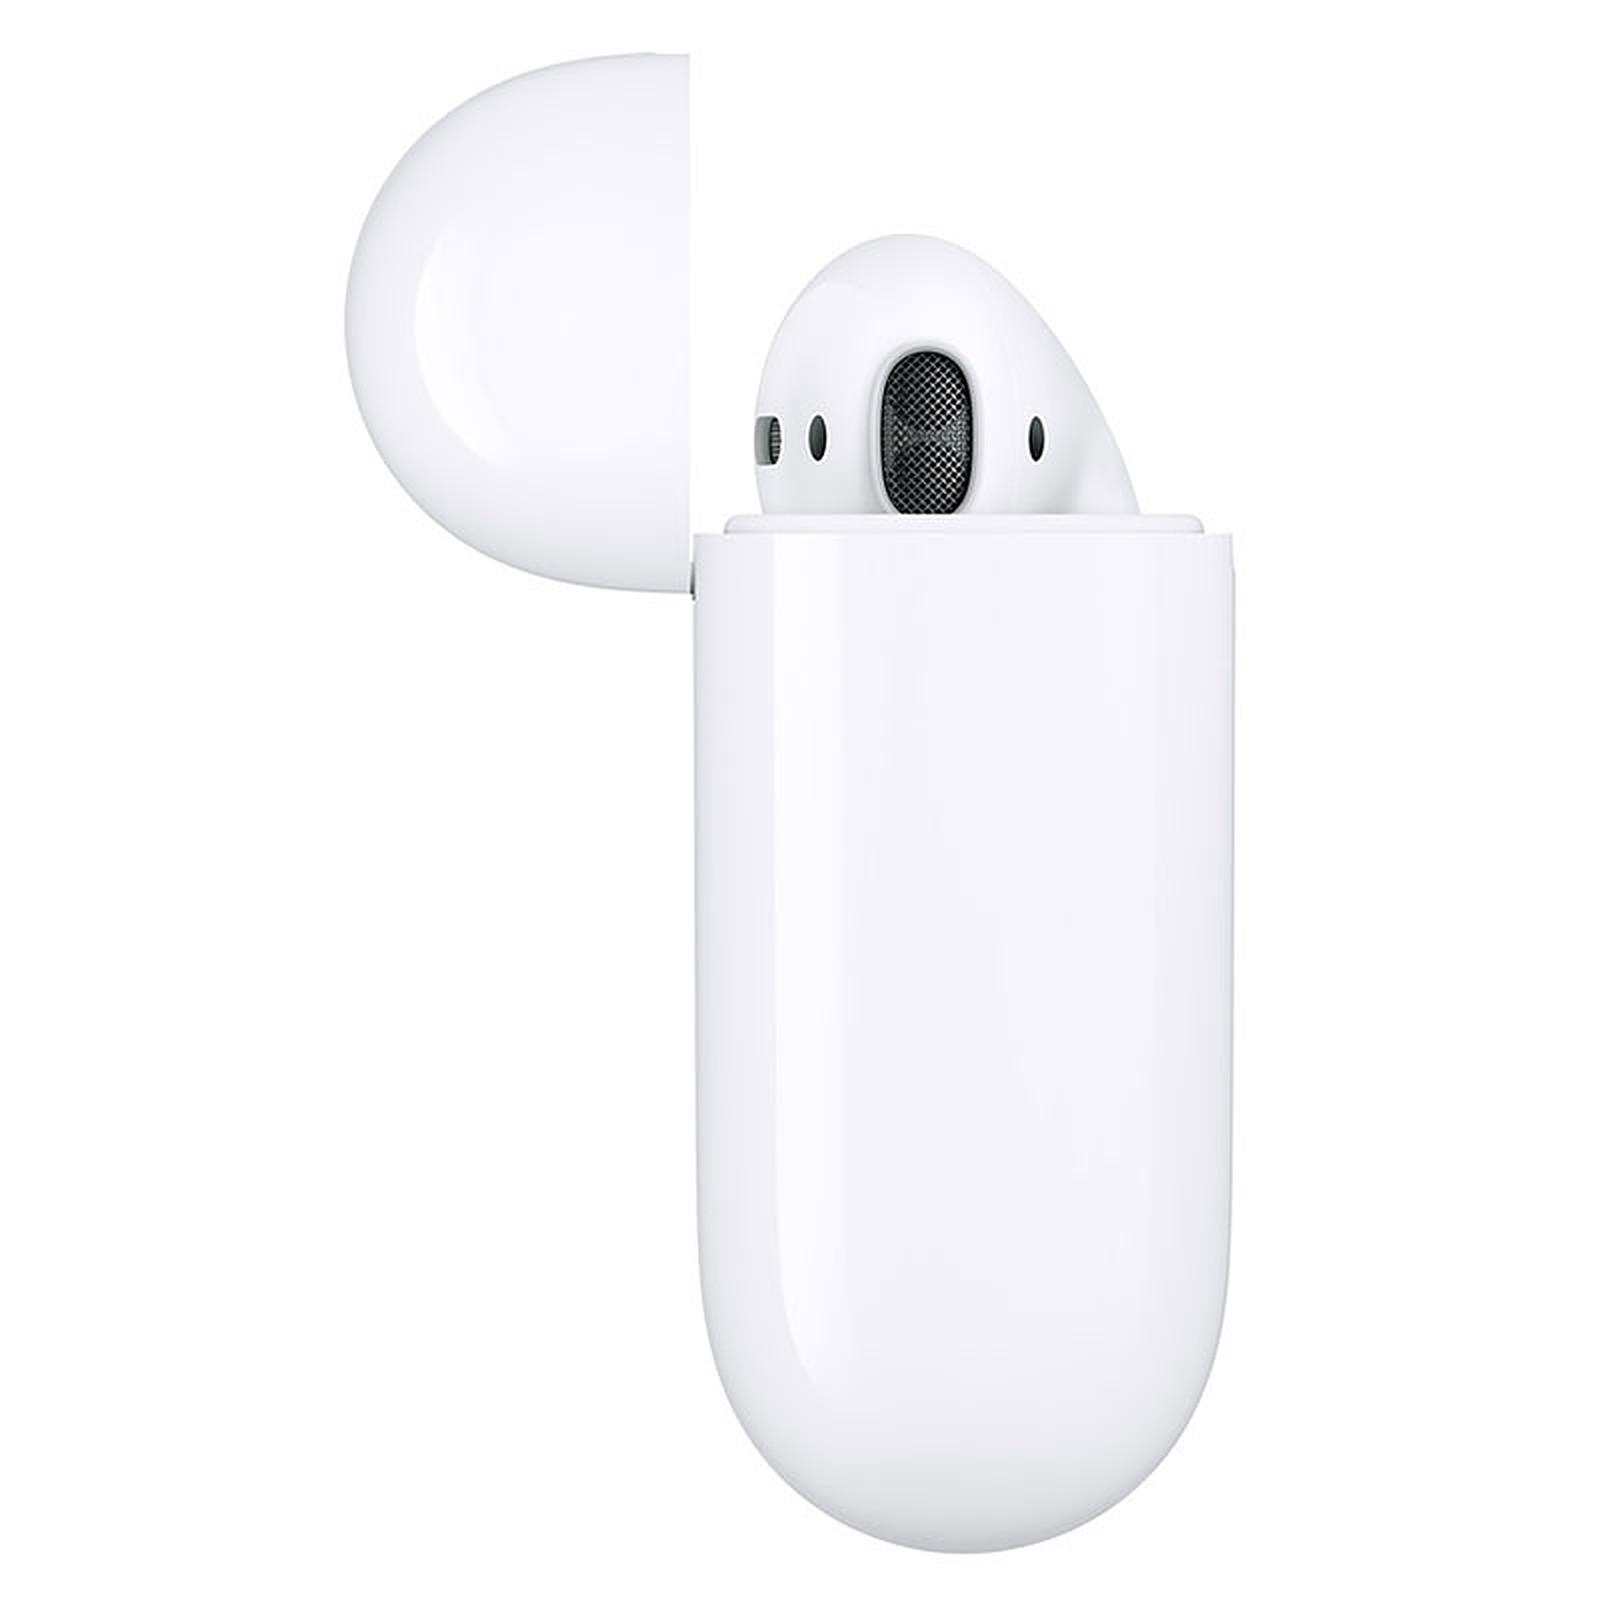 Apple AirPods (2nd Gen) with Charging Case - White